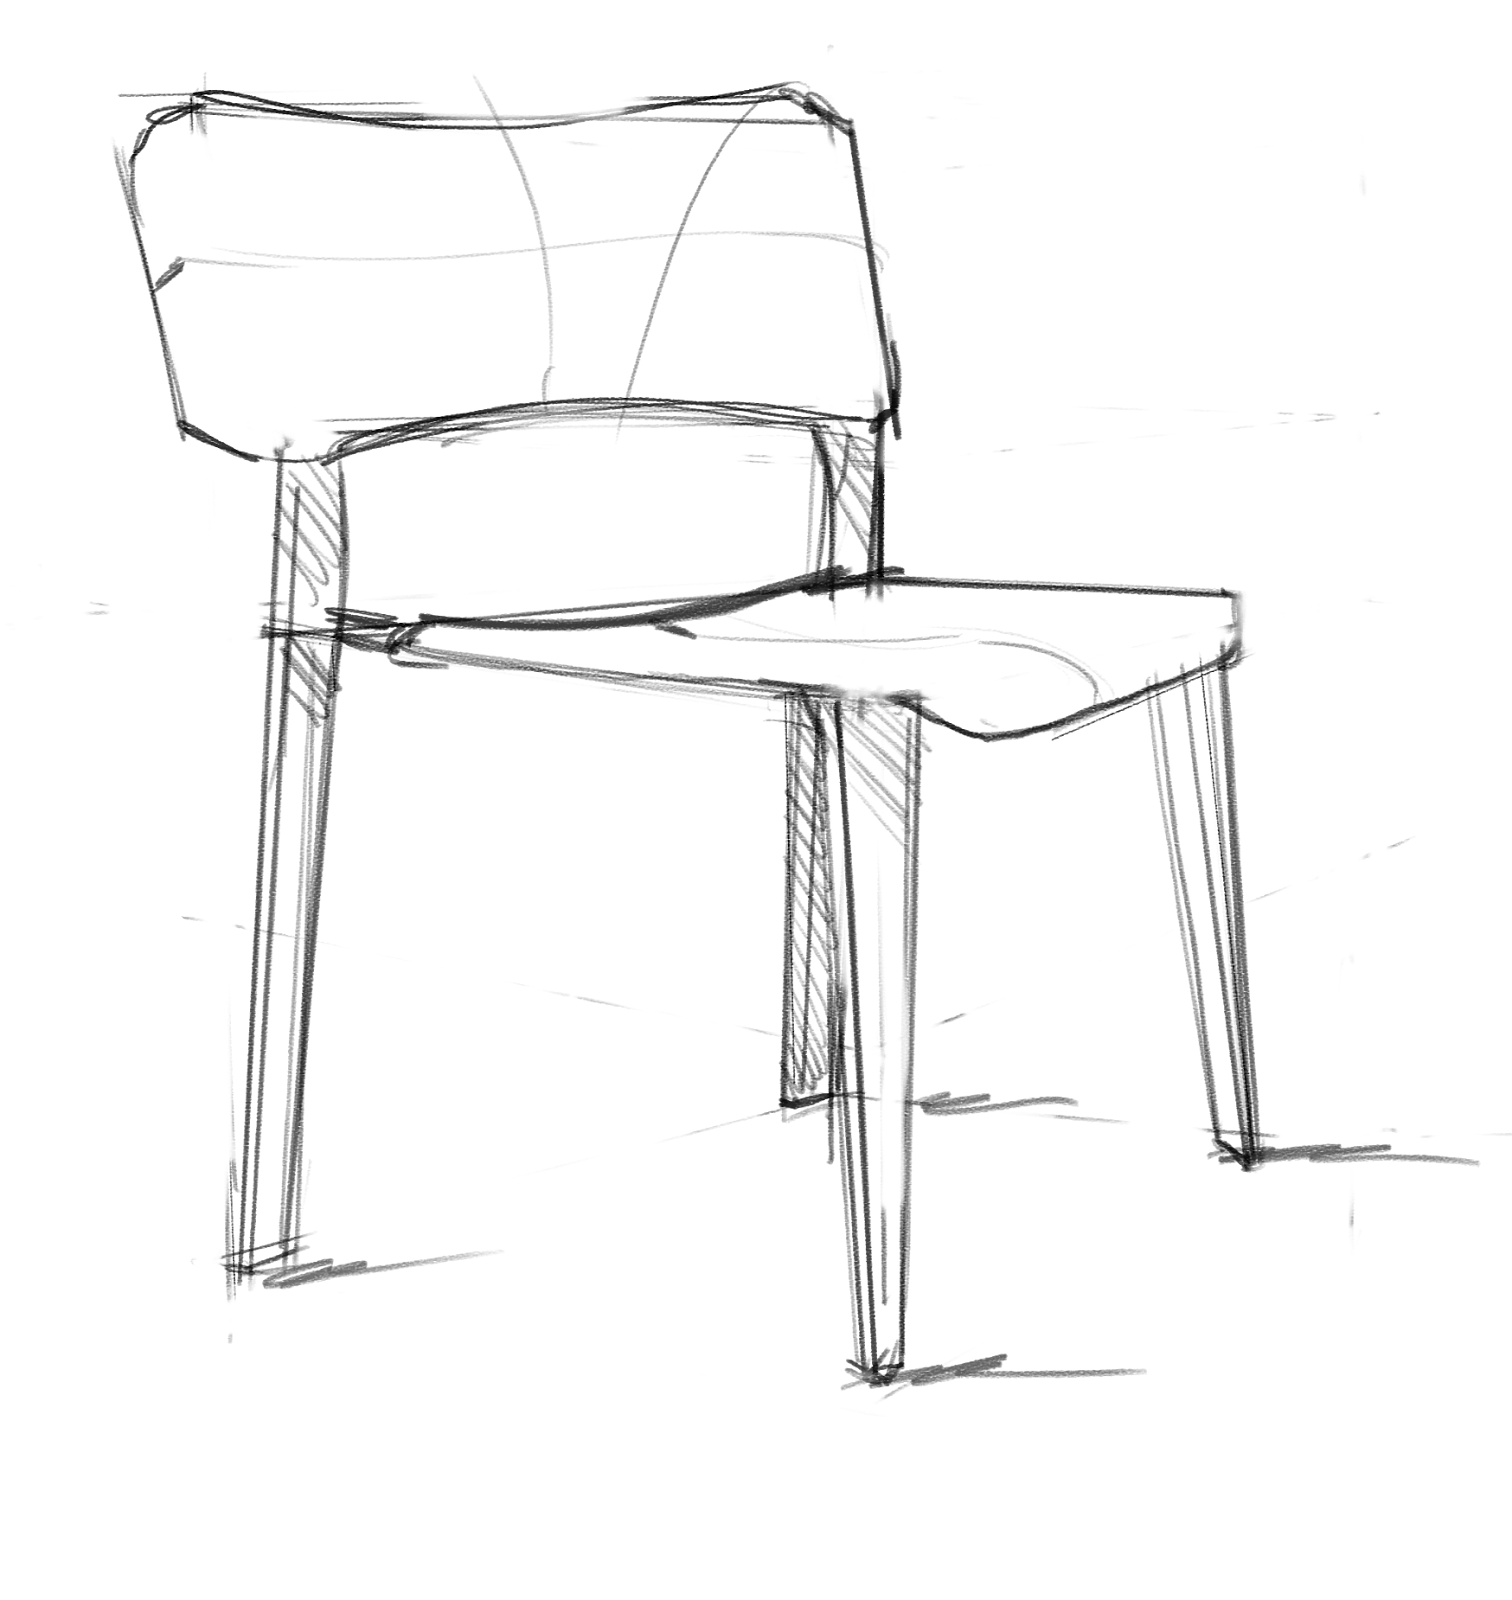 Sketchup Basic Tutorials  Modeling Simple Chair  YouTube